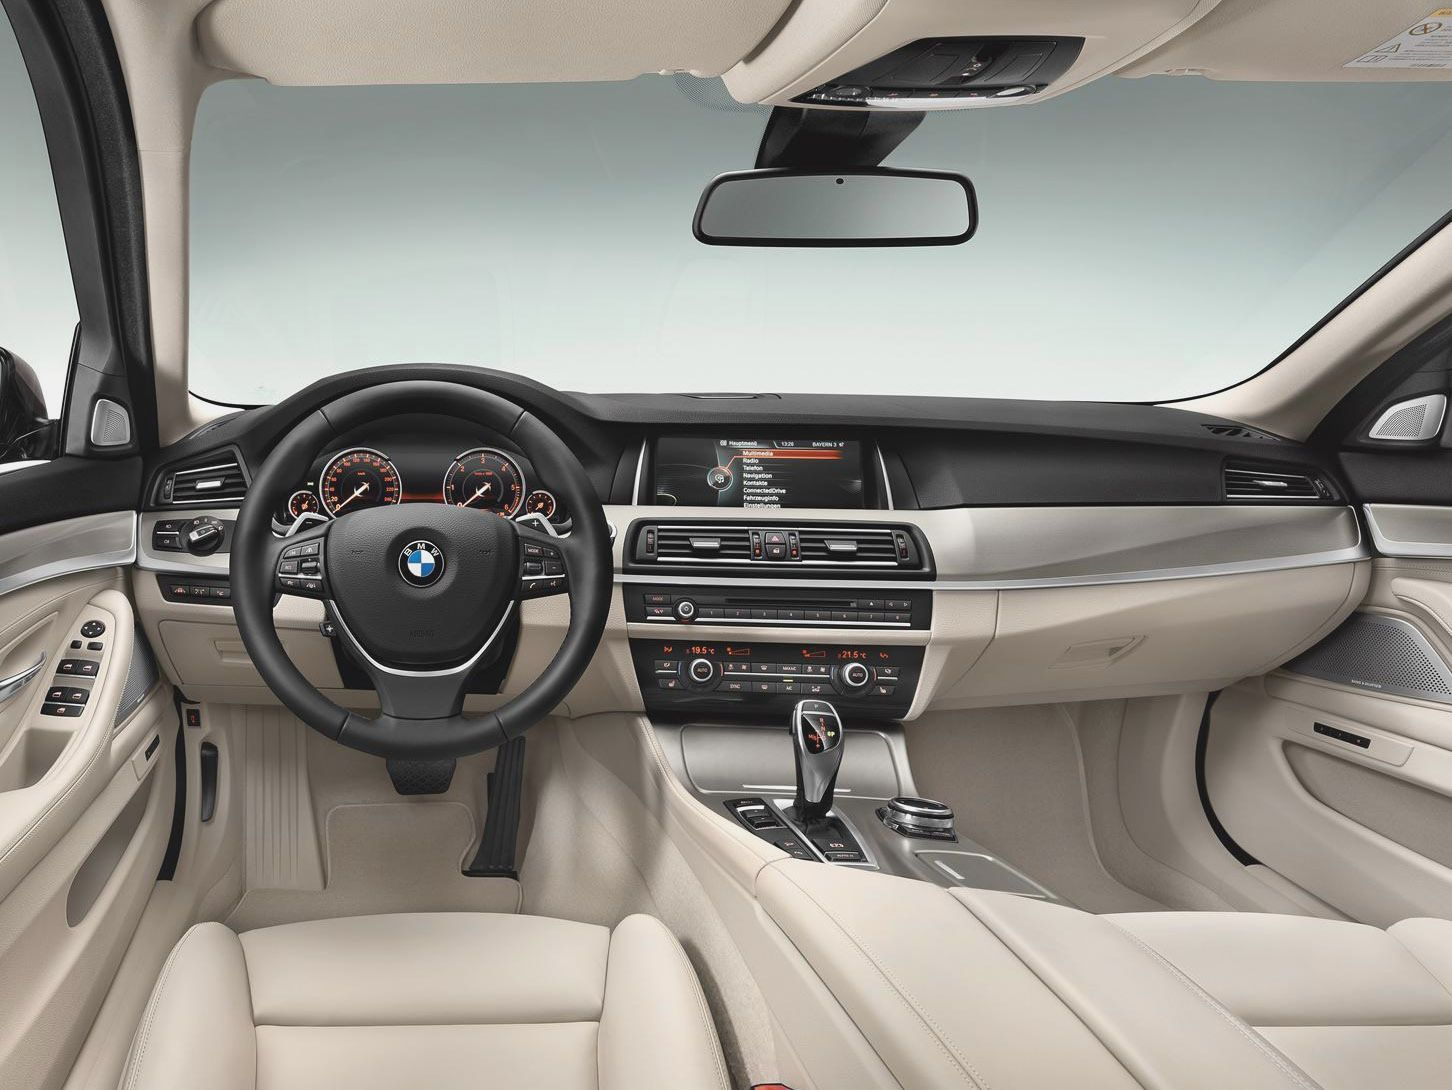 Bmw 5 Series New Model 2015 More Picture Bmw 5 Series New Model